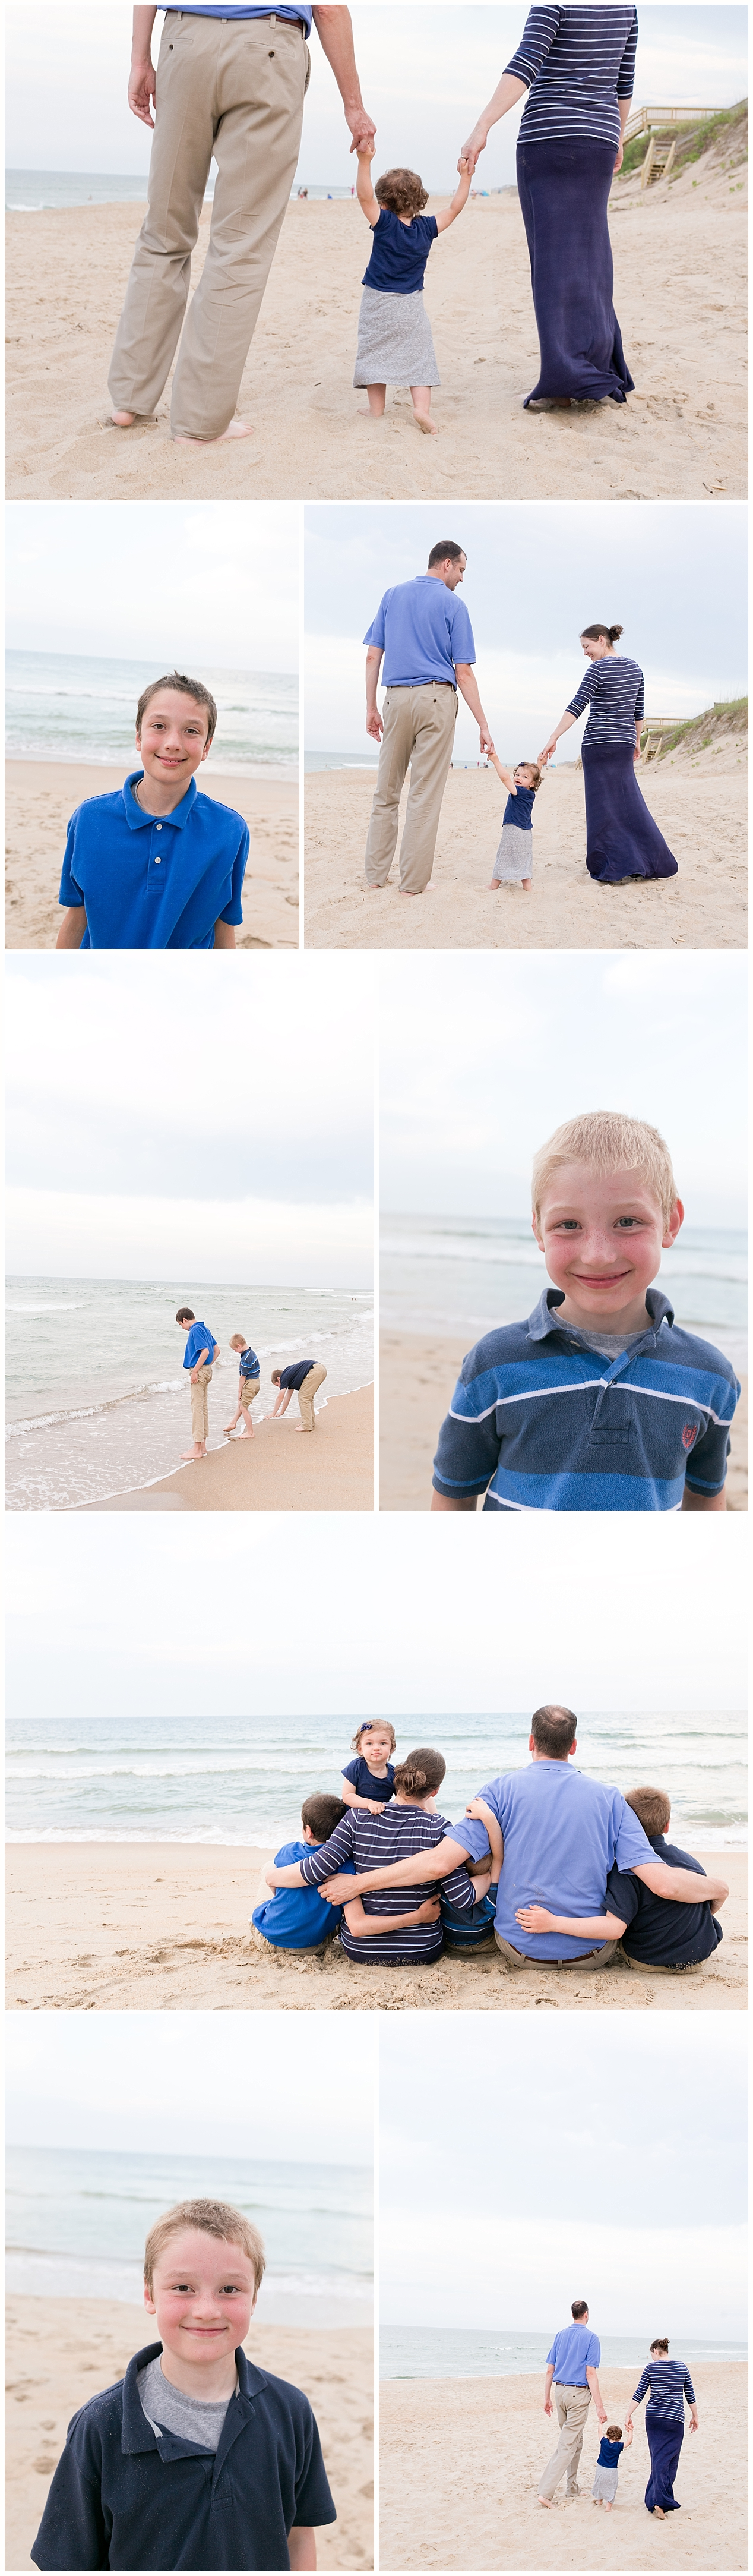 family photos at the beach - Ocean Springs family photographer